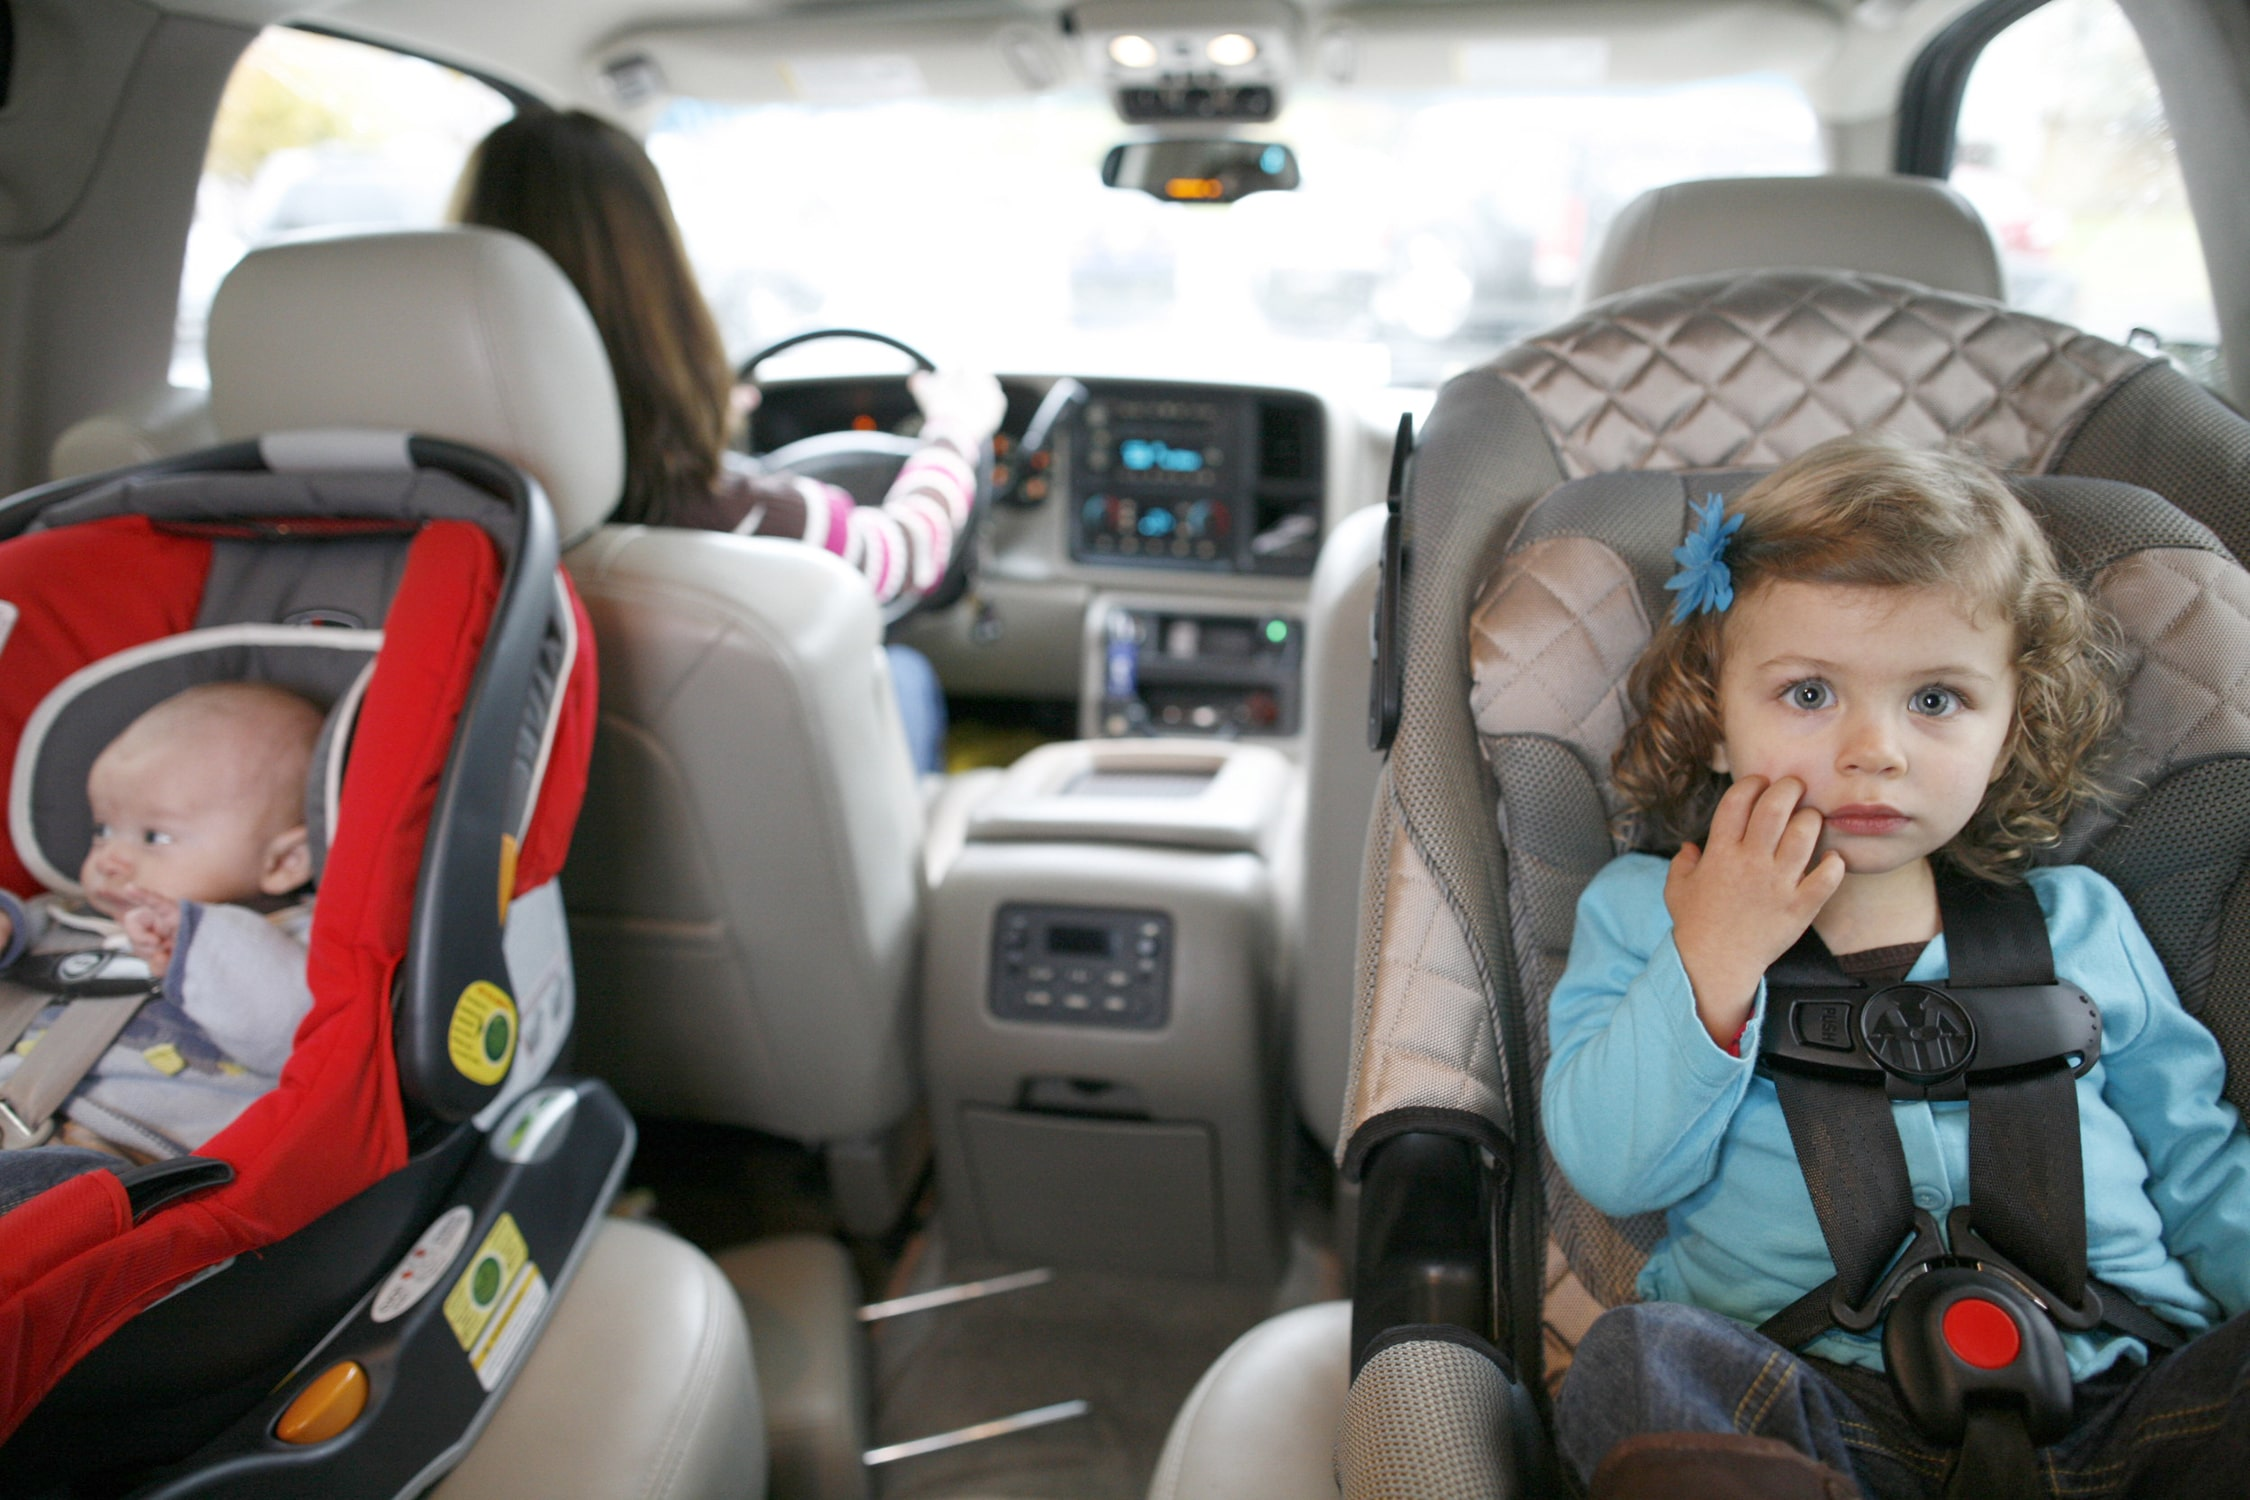 Infant Carrier Car Seat Guide The Big Changes To The Nj Car Seat Law What You Need To